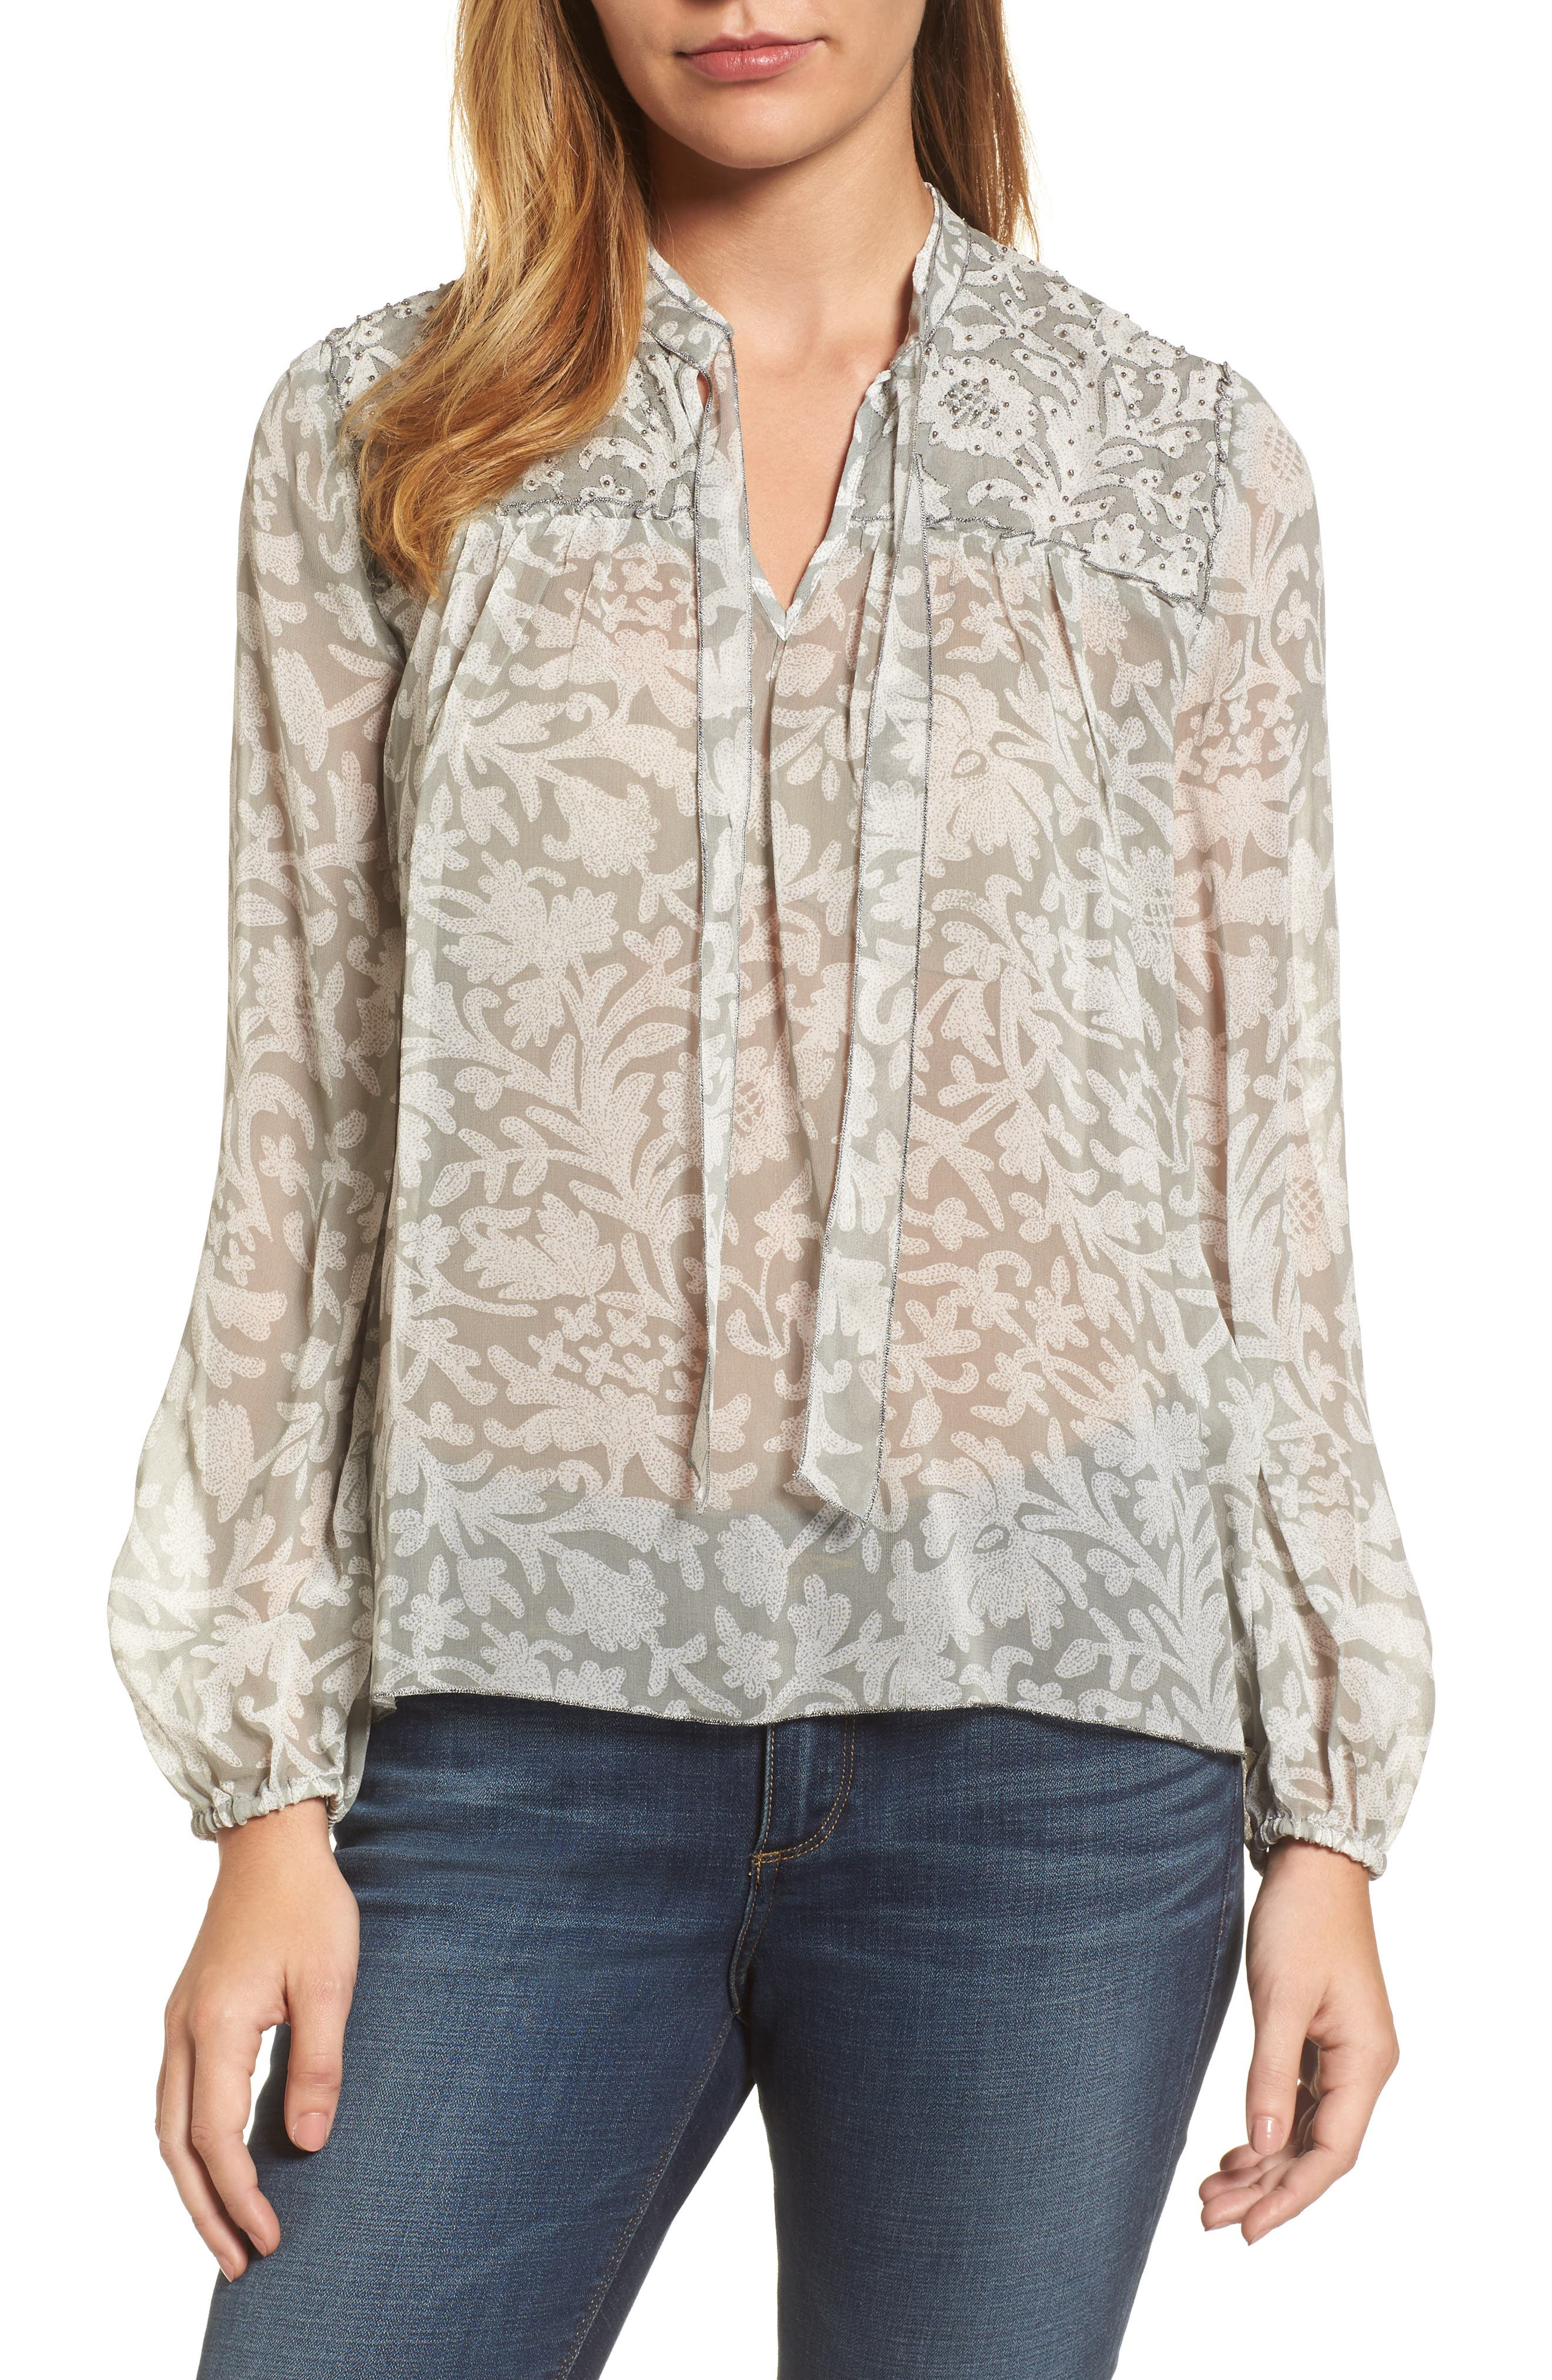 Main Image - Lucky Brand Beaded Floral Print Top